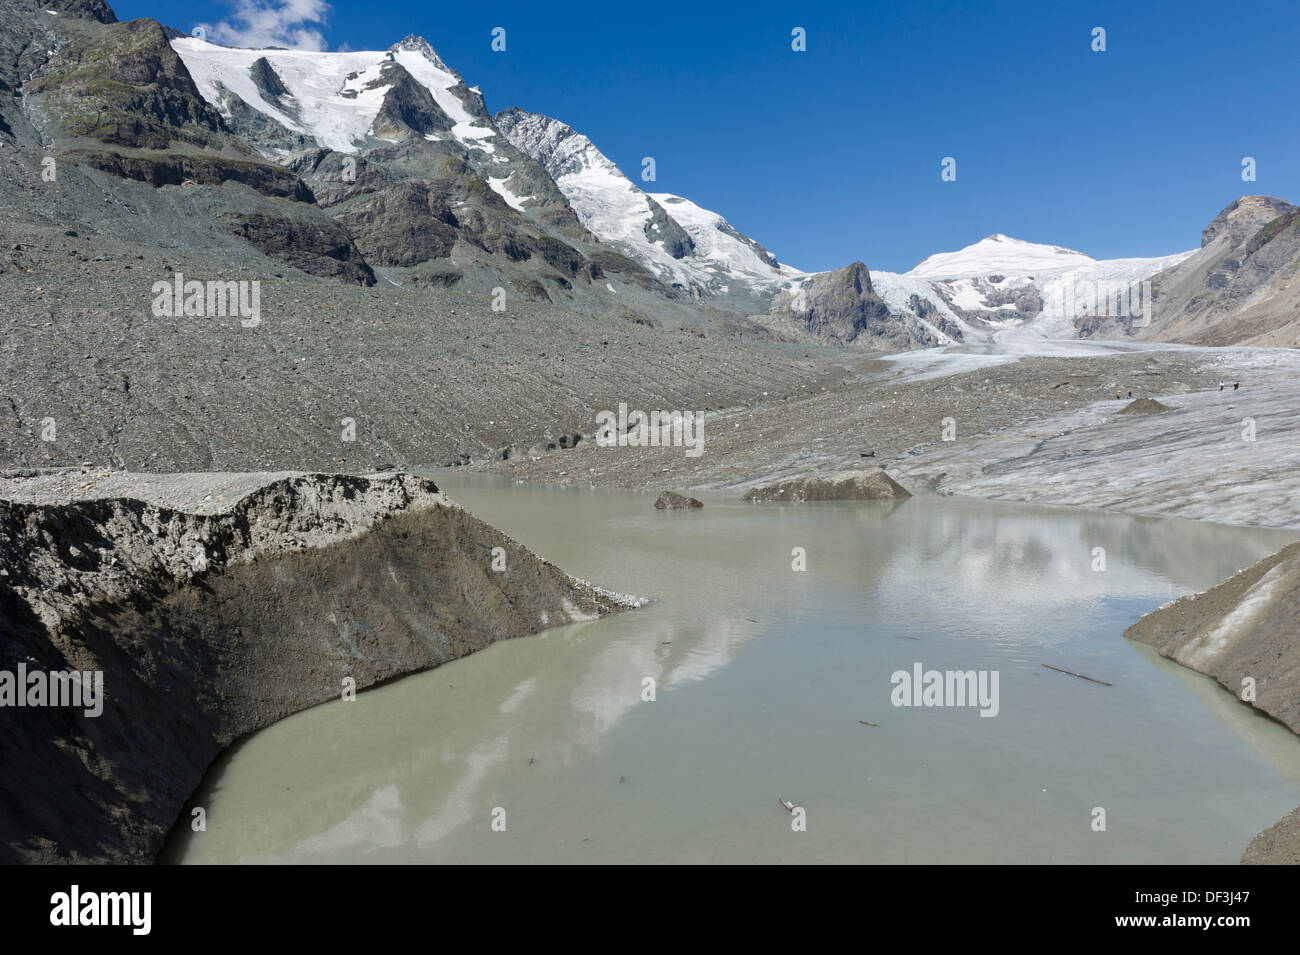 Austria / Hohe Tauern National Park - Impacts of Climate Change: glacier melting. Melting water lake at Pasterze glacier. - Stock Image